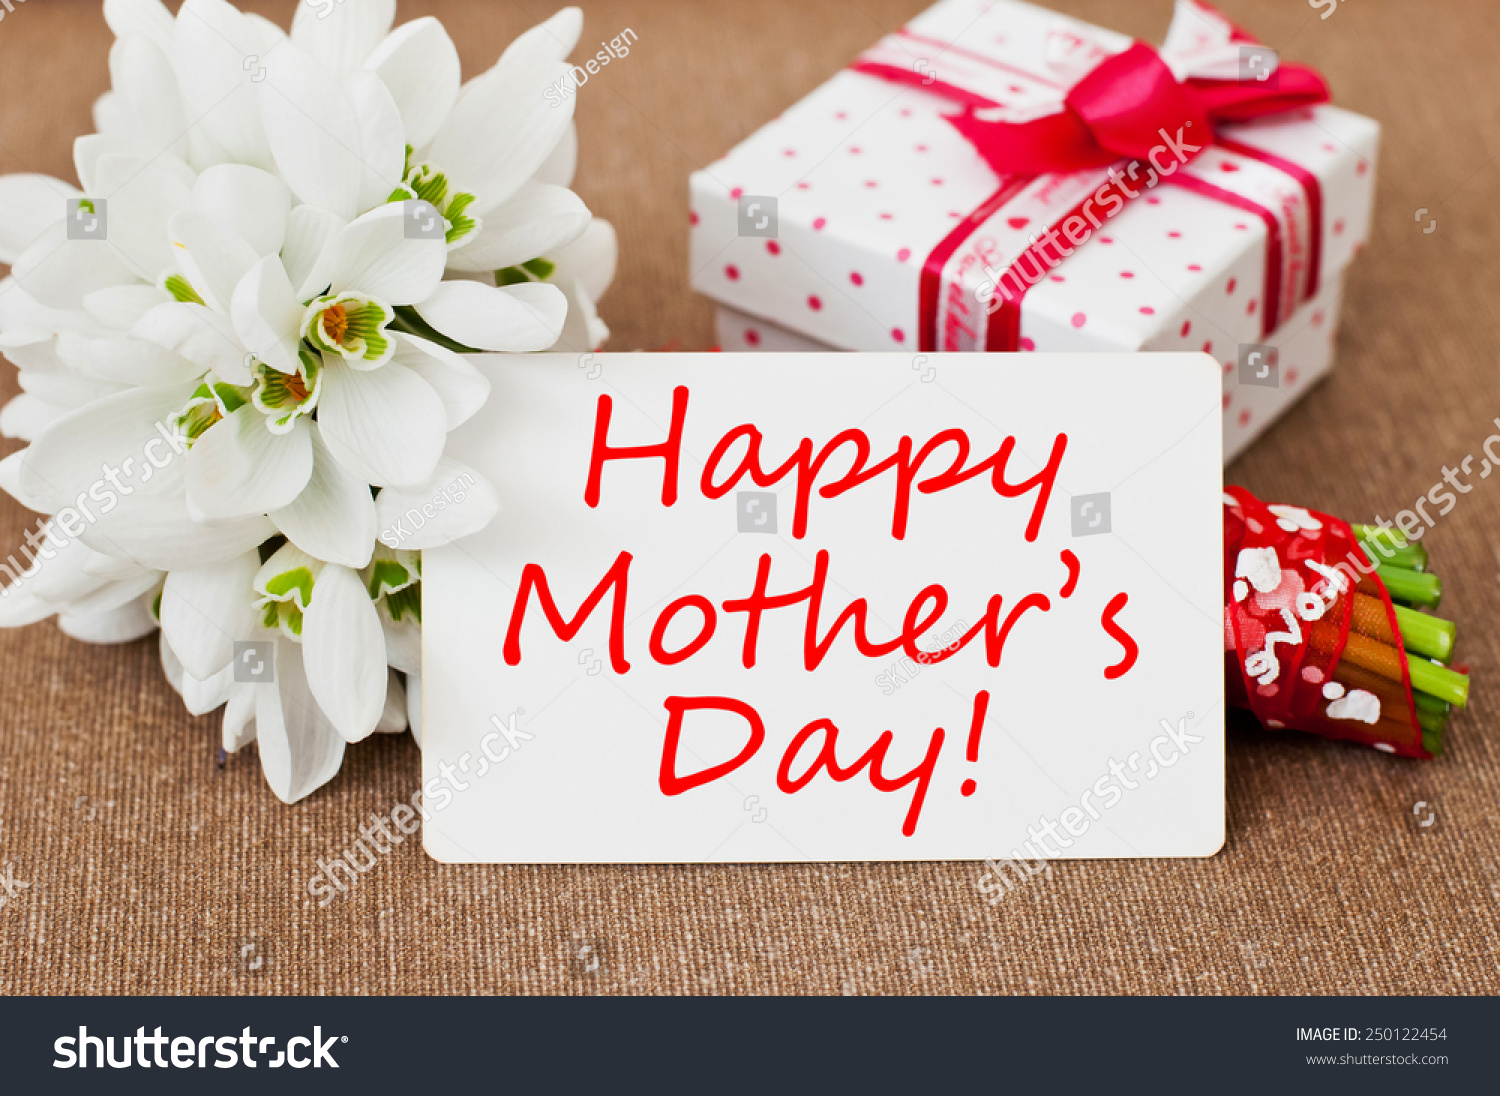 Happy Mothers Day Message Written Greeting Stock Photo Royalty Free